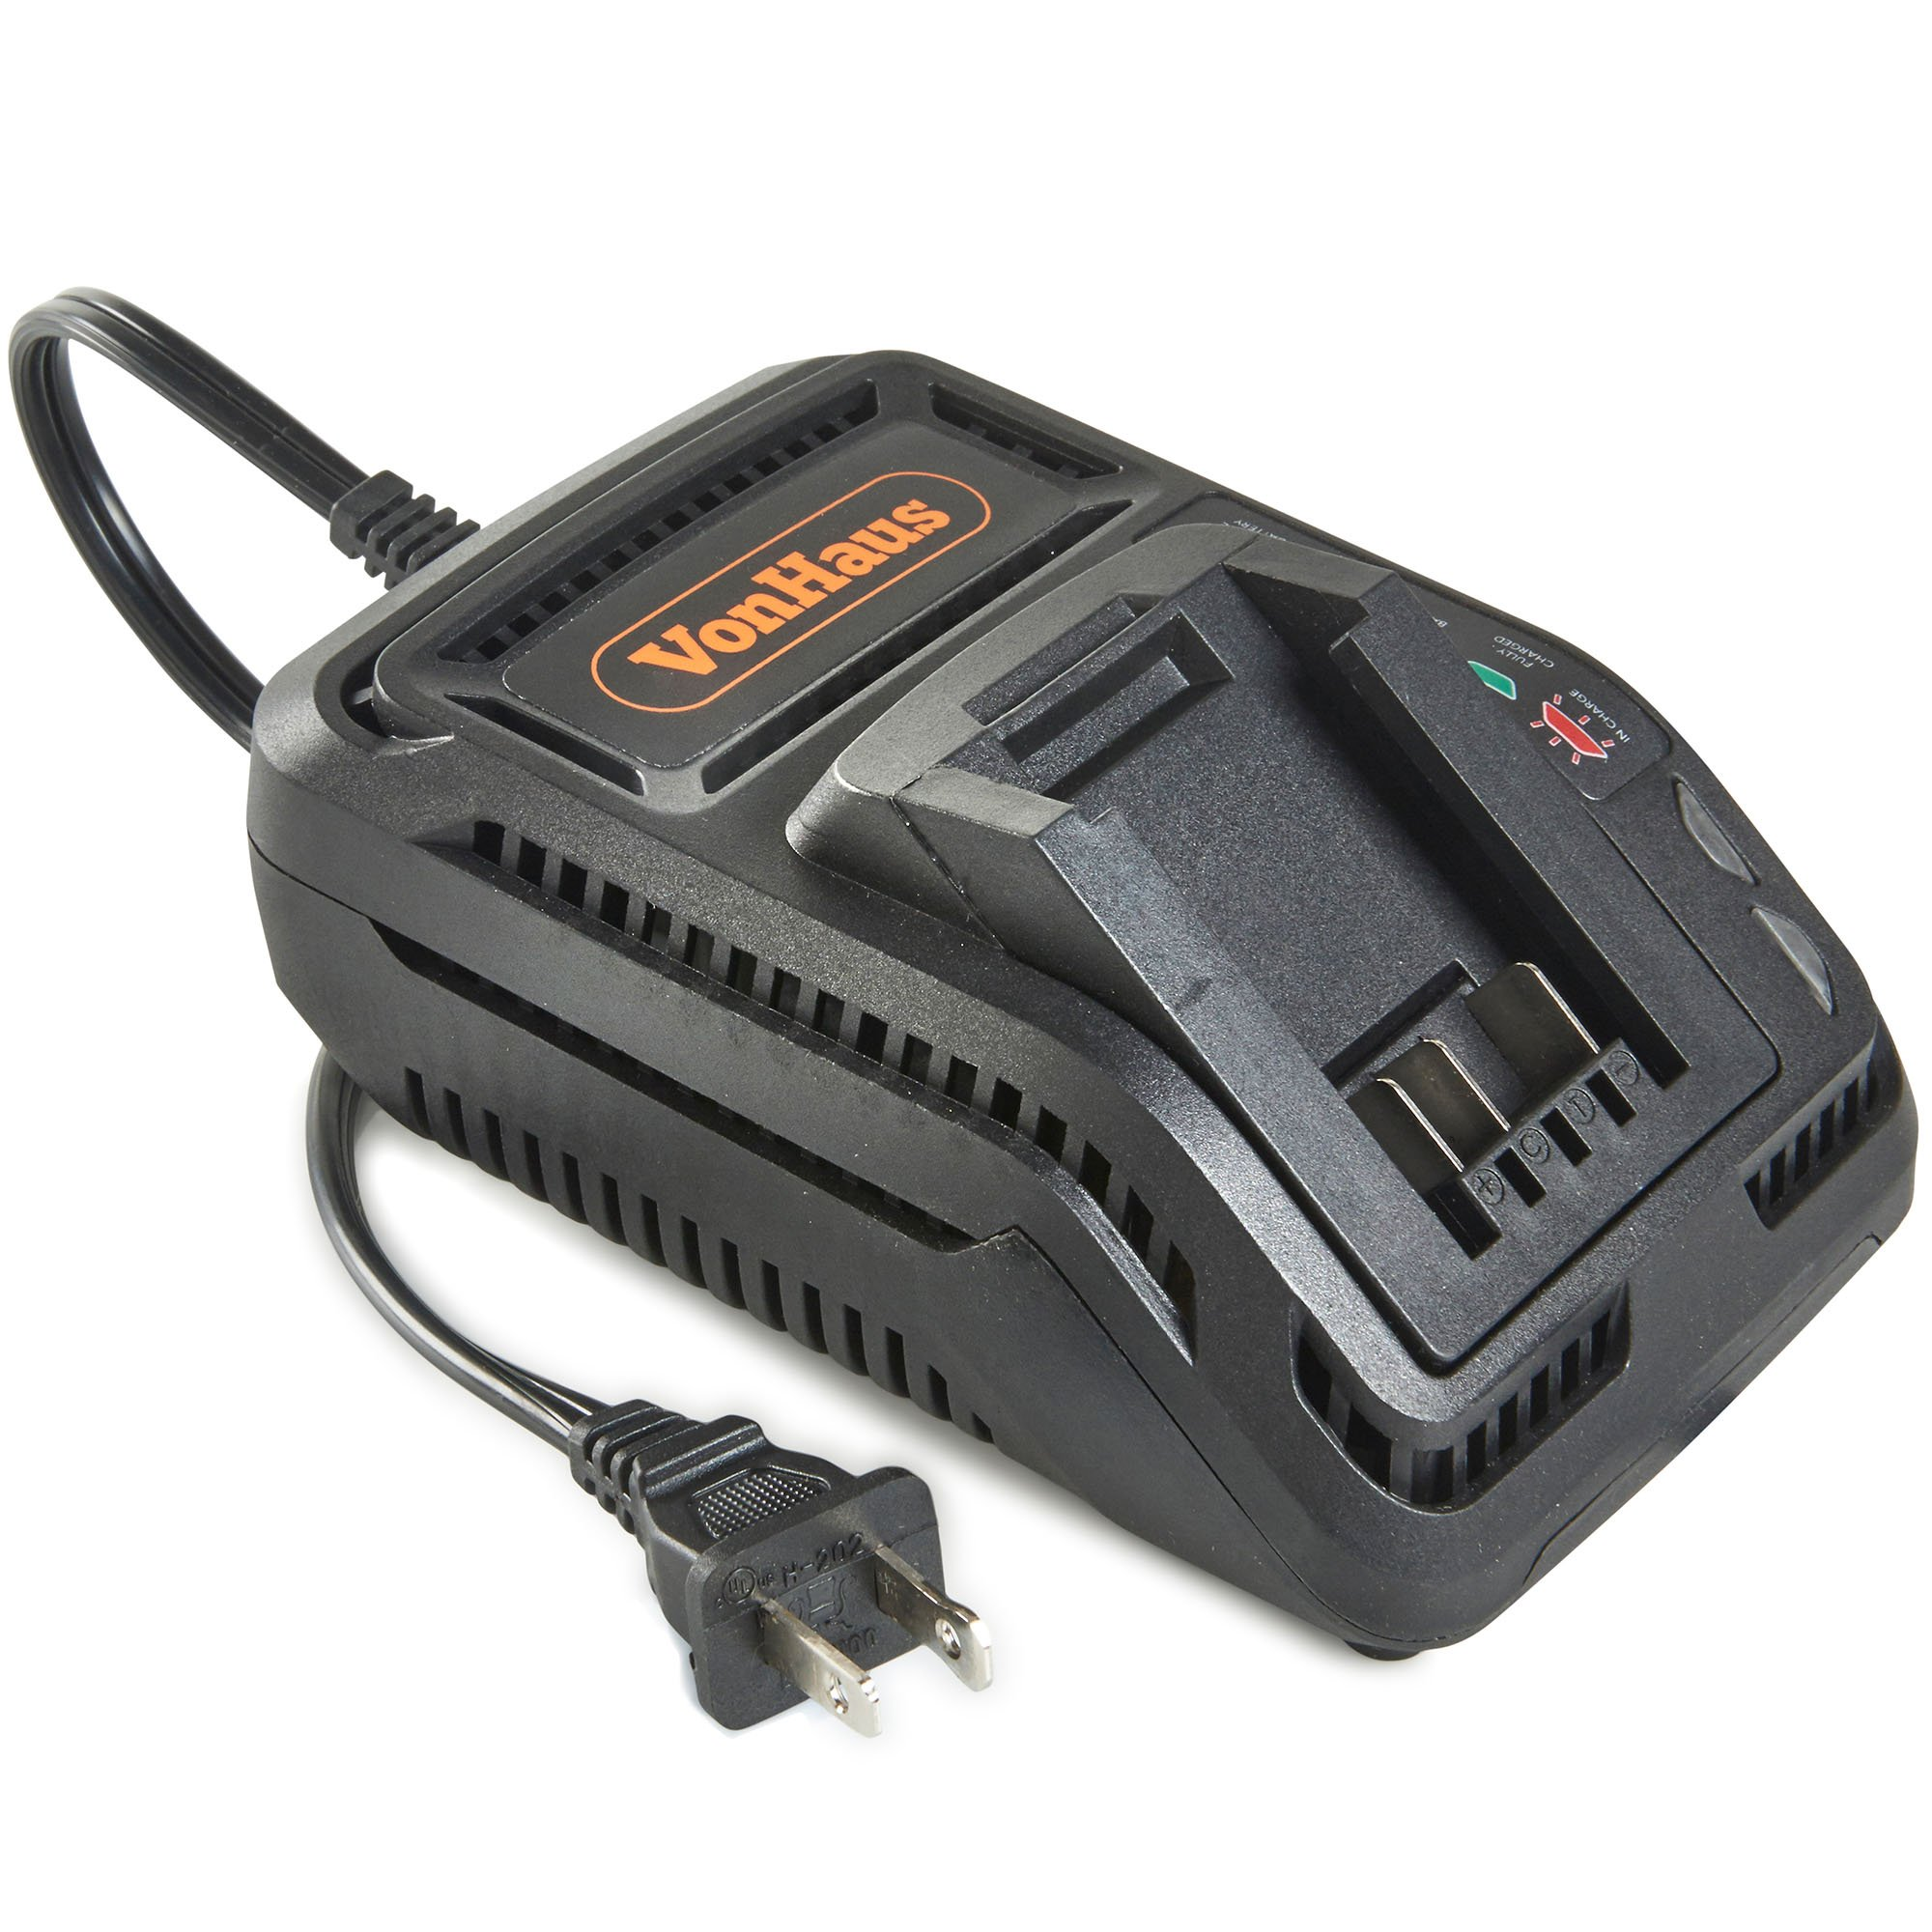 VonHaus 20V MAX 2.4A Fast Charger – Compatible with 3.0ah & 4.0ah Batteries for VonHaus 20V Max Max Lithium-ion D Series Tools (Charger Only)